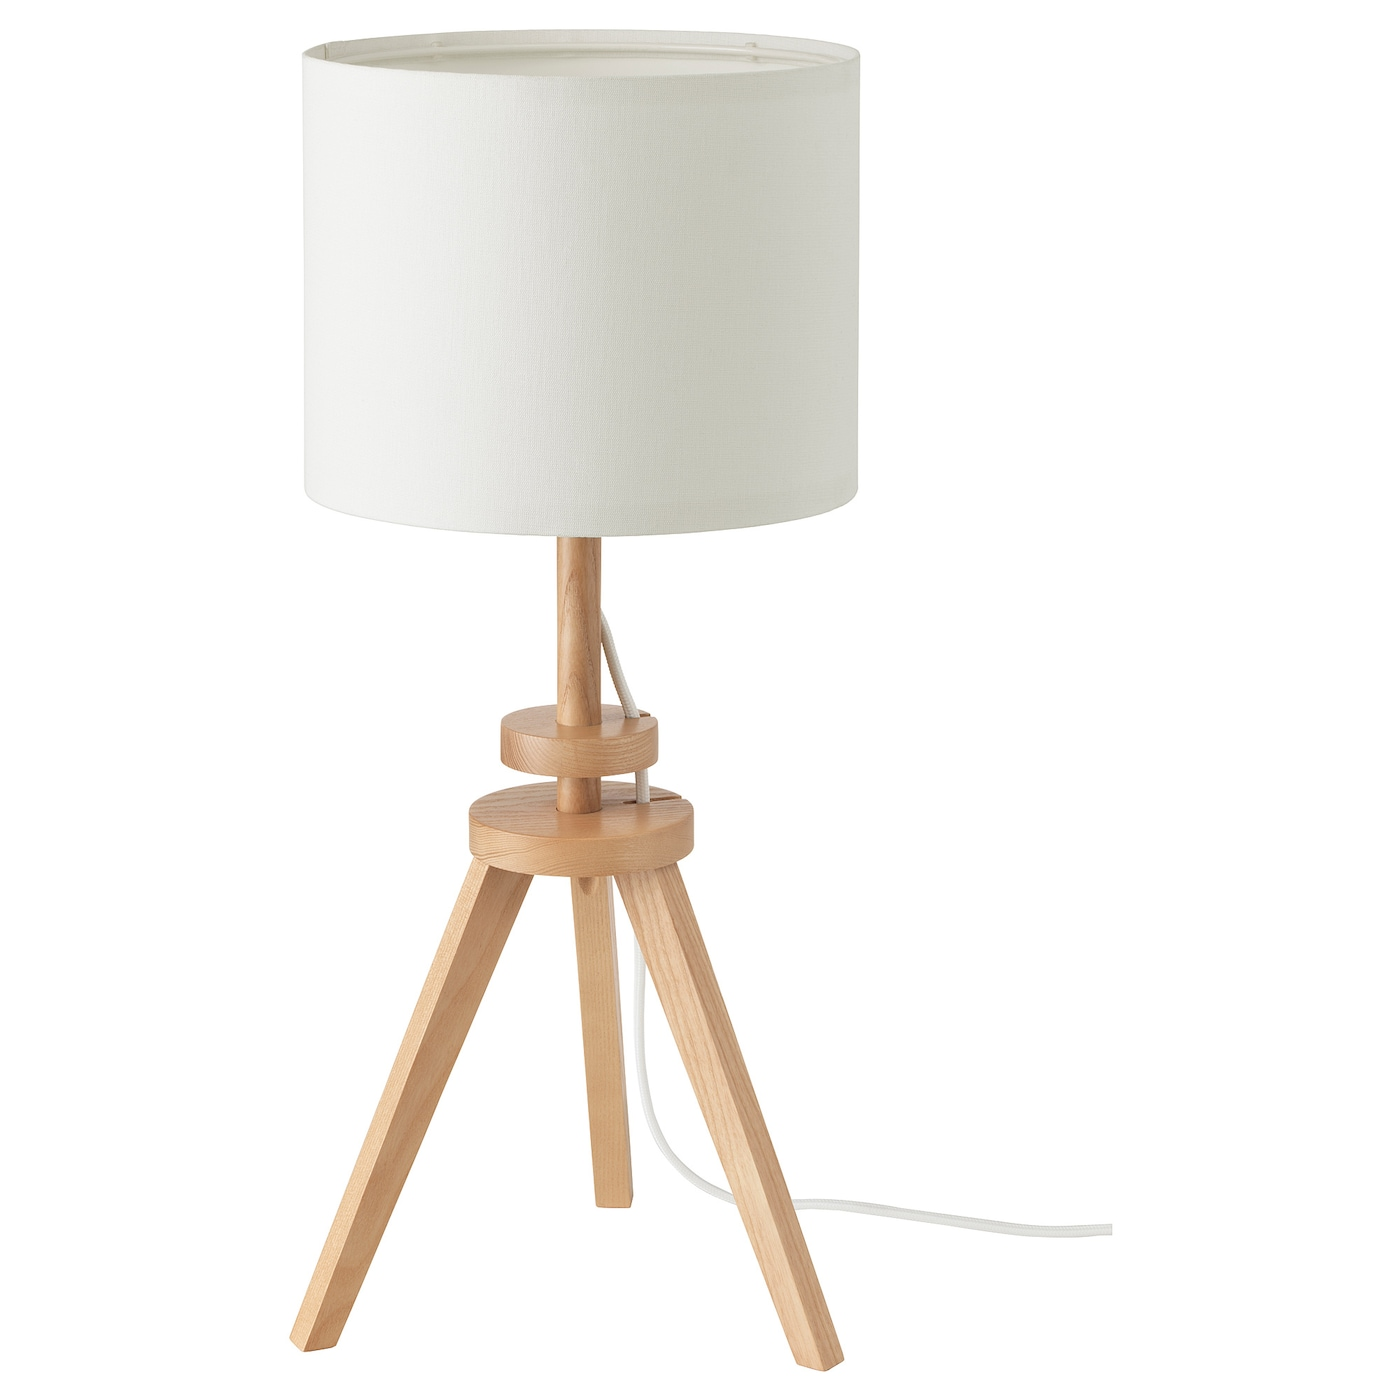 Ikea table lamp in England | Furniture